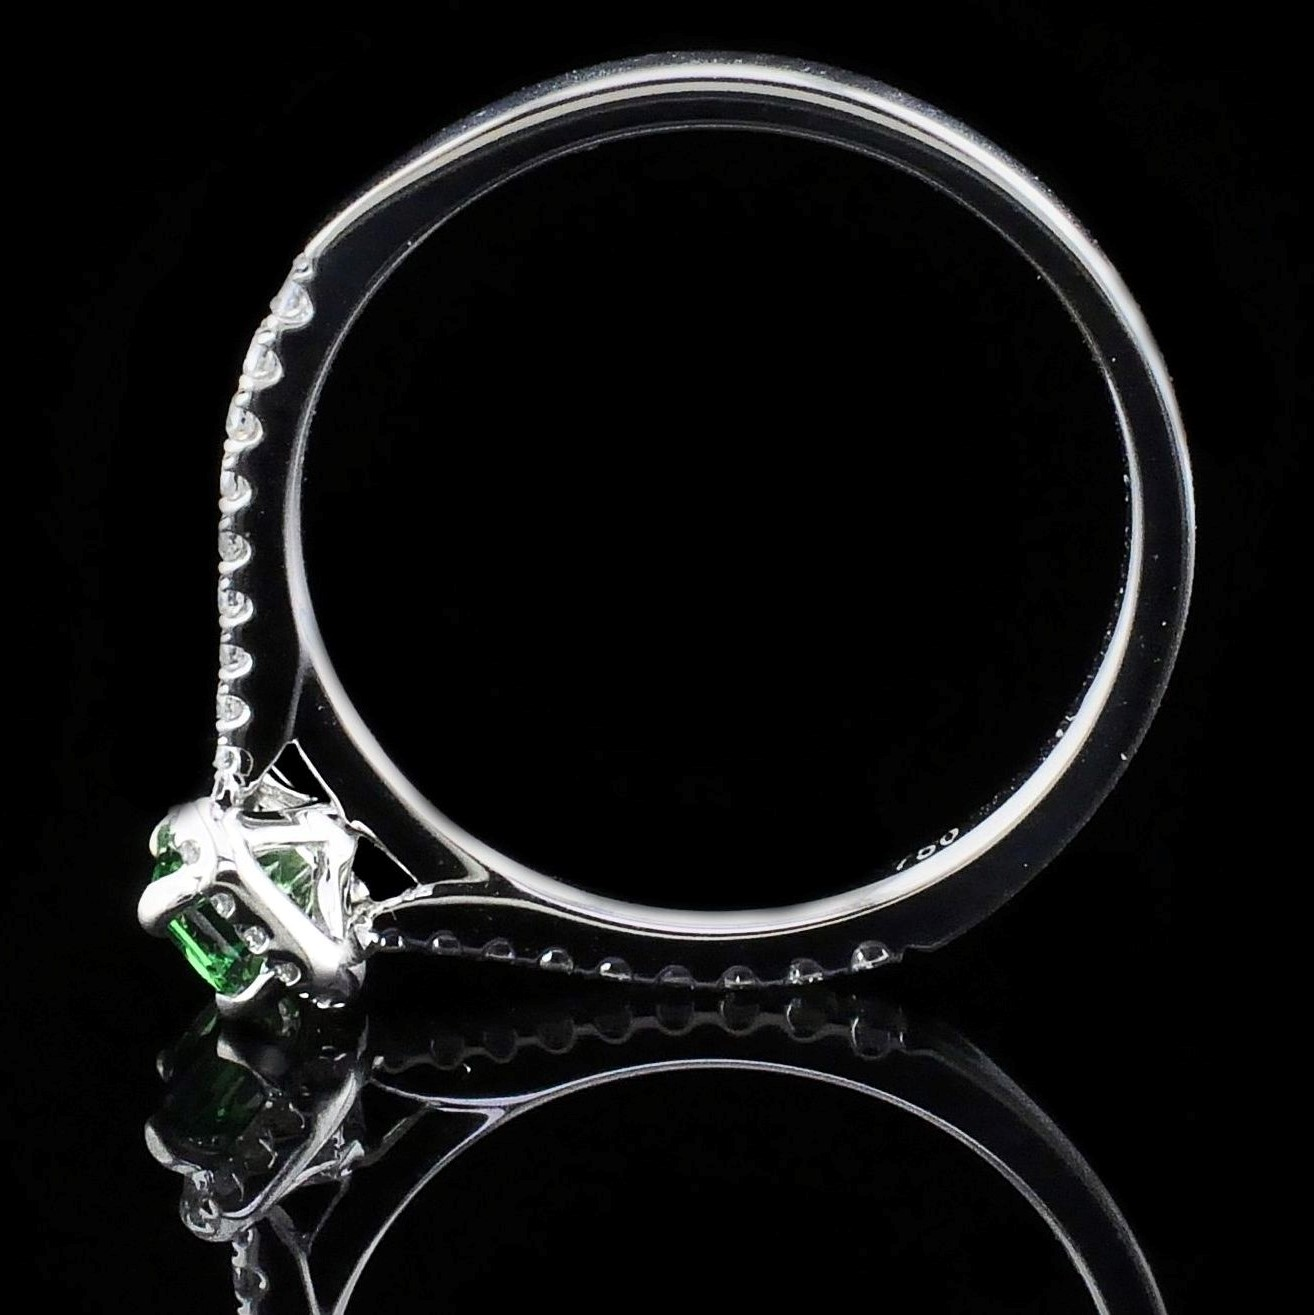 Women's Colored Stone Rings - Ladies Tsavorite Garnet and Diamond Fashion Ring - image 3